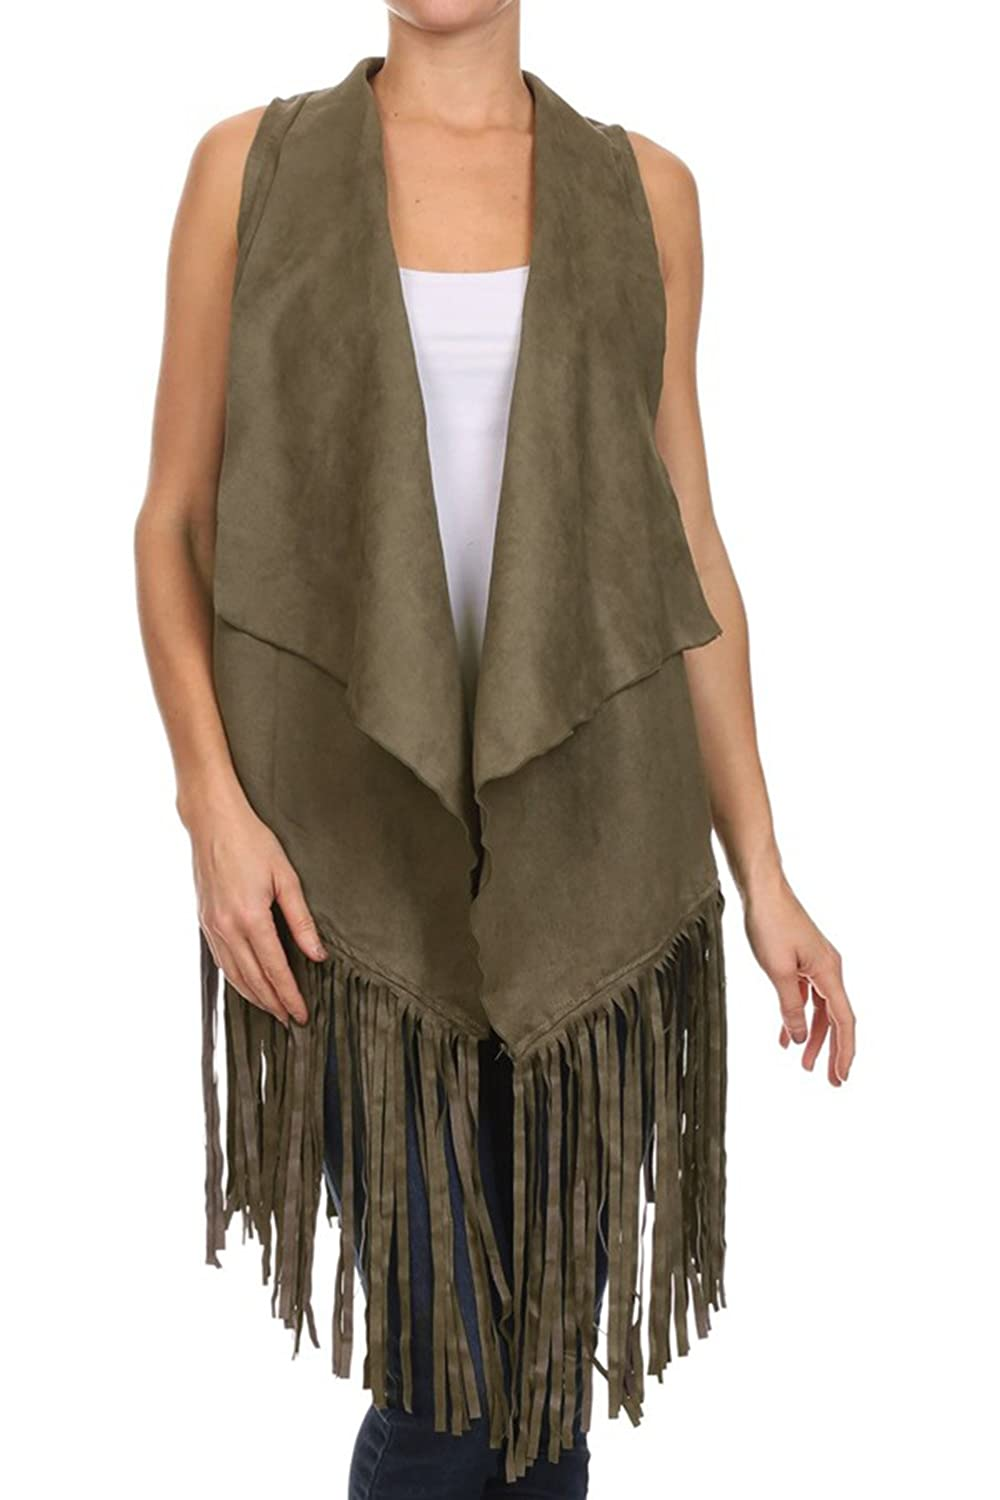 Solution Clothing Bangbangusa Womens Long Fringed Cardigan Vest T7028